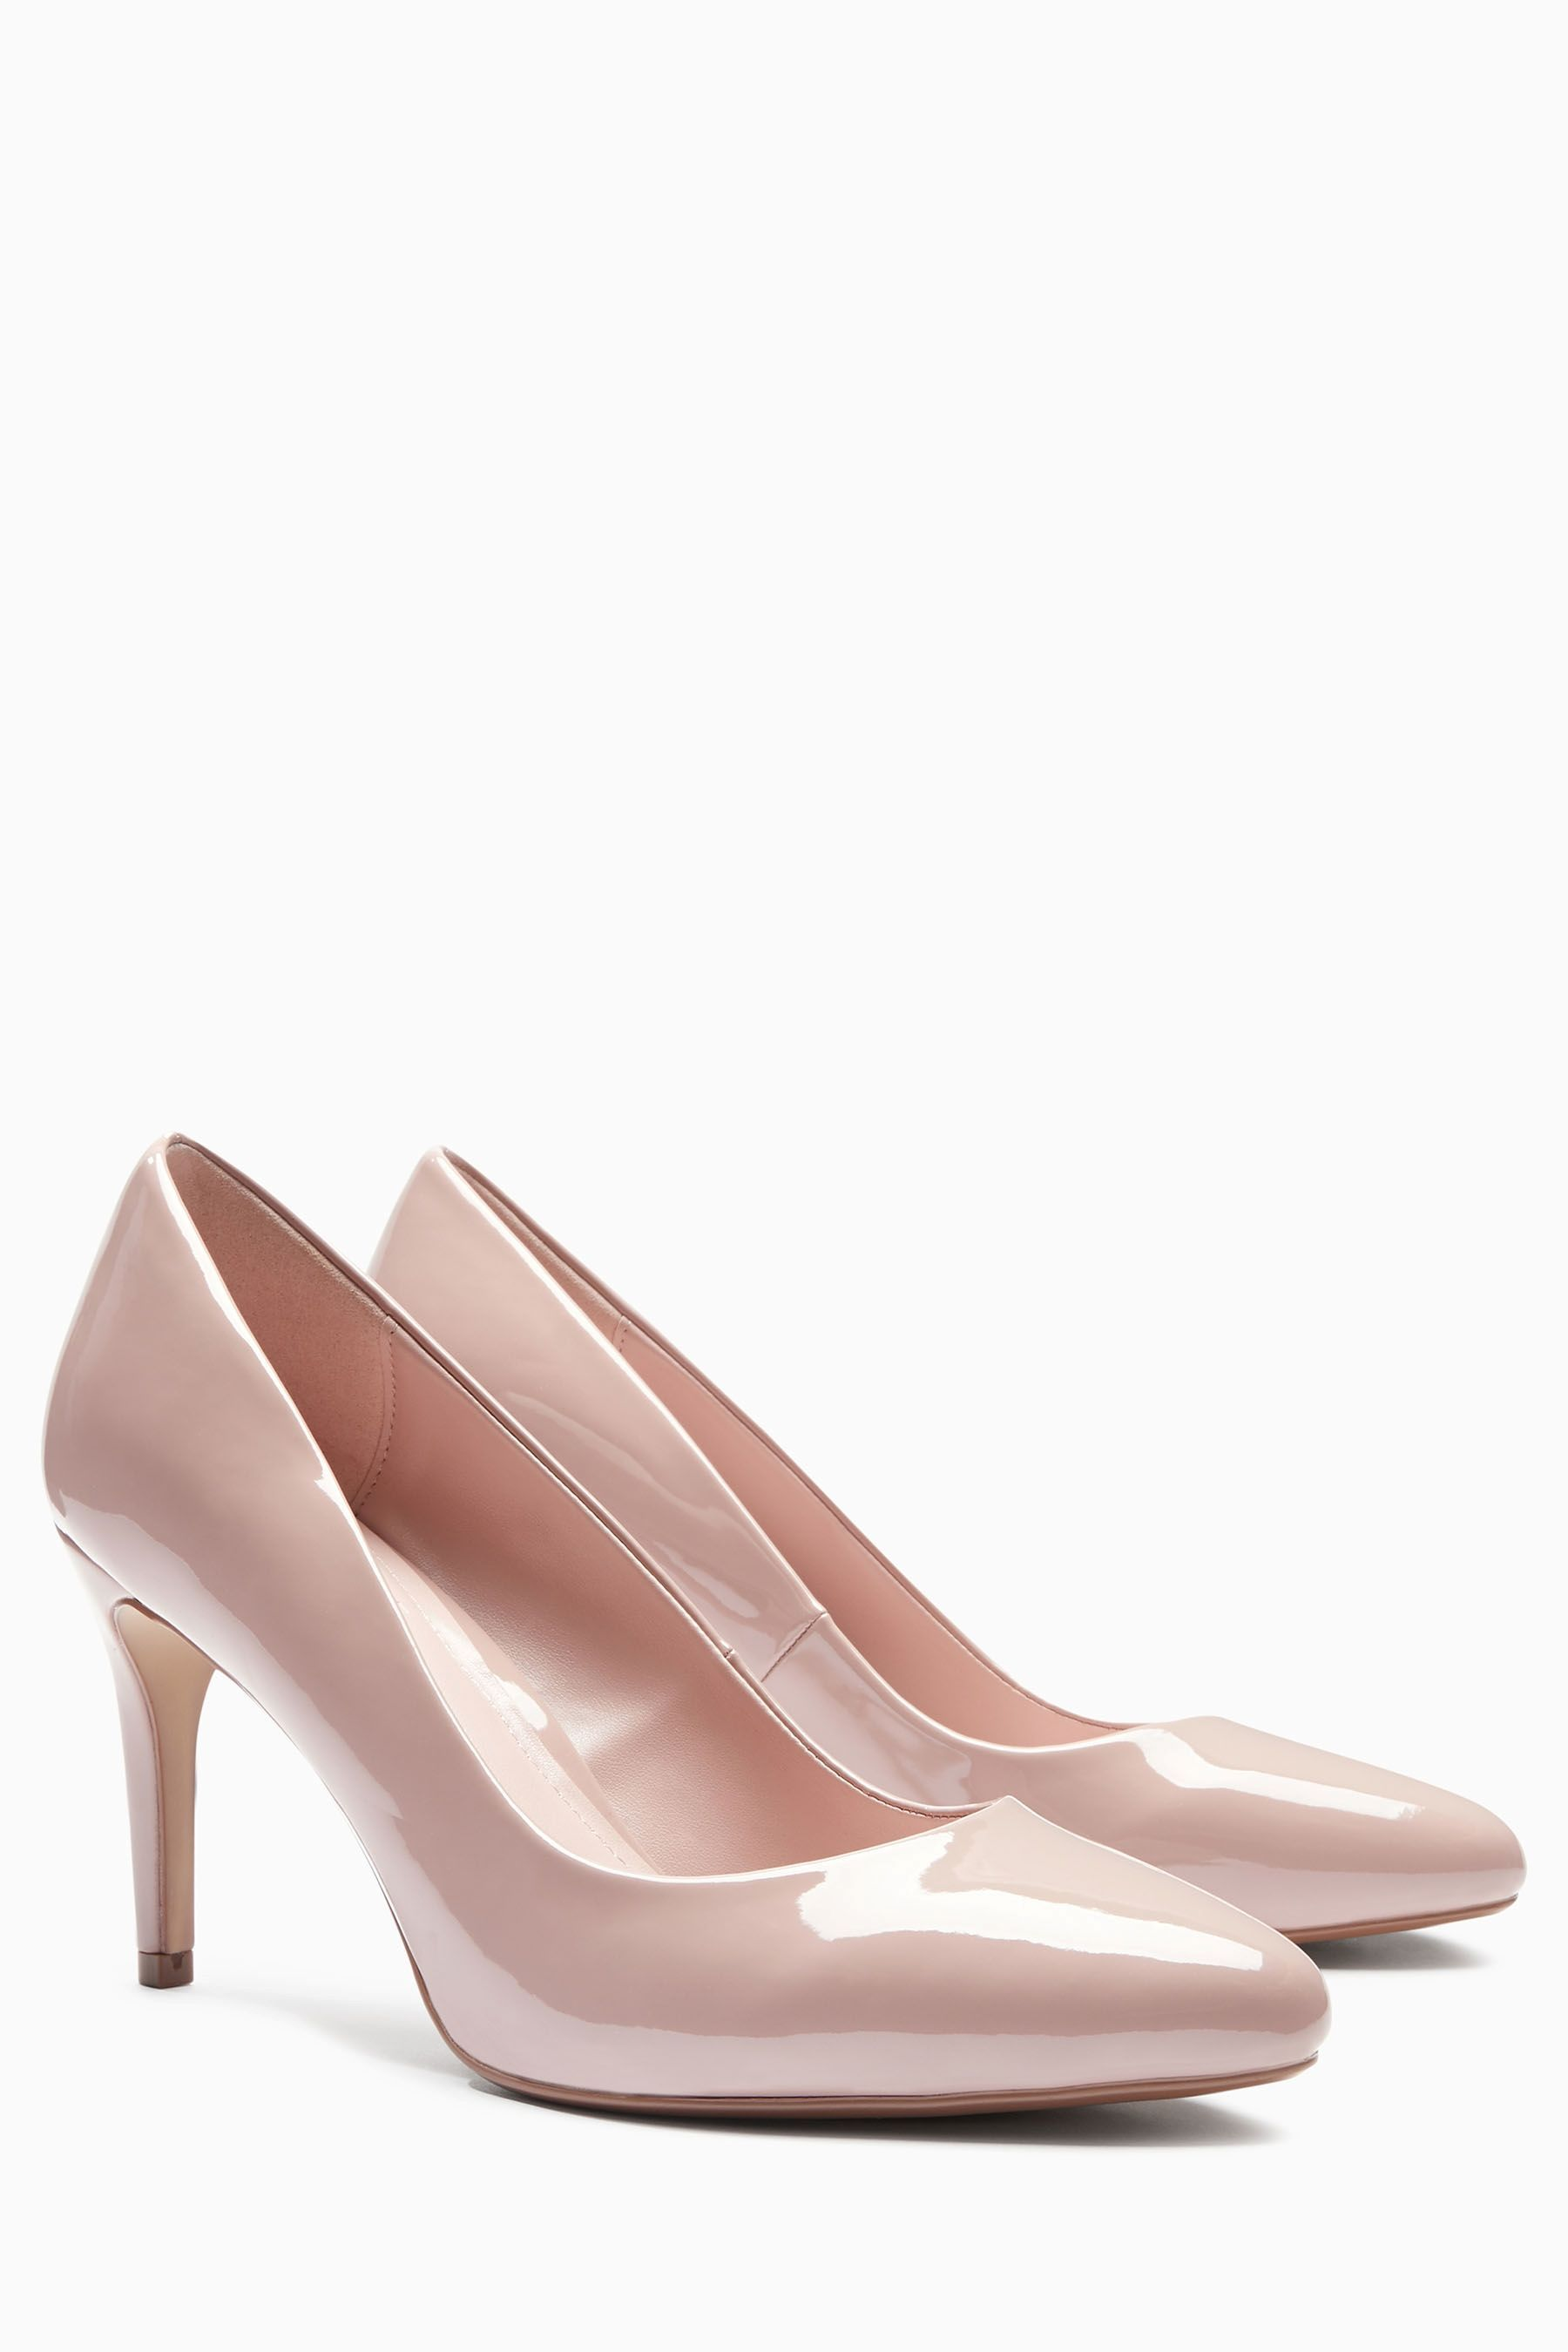 d654d160e4 Buy Nude Almond Toe Court Shoes from the Next UK online shop ...